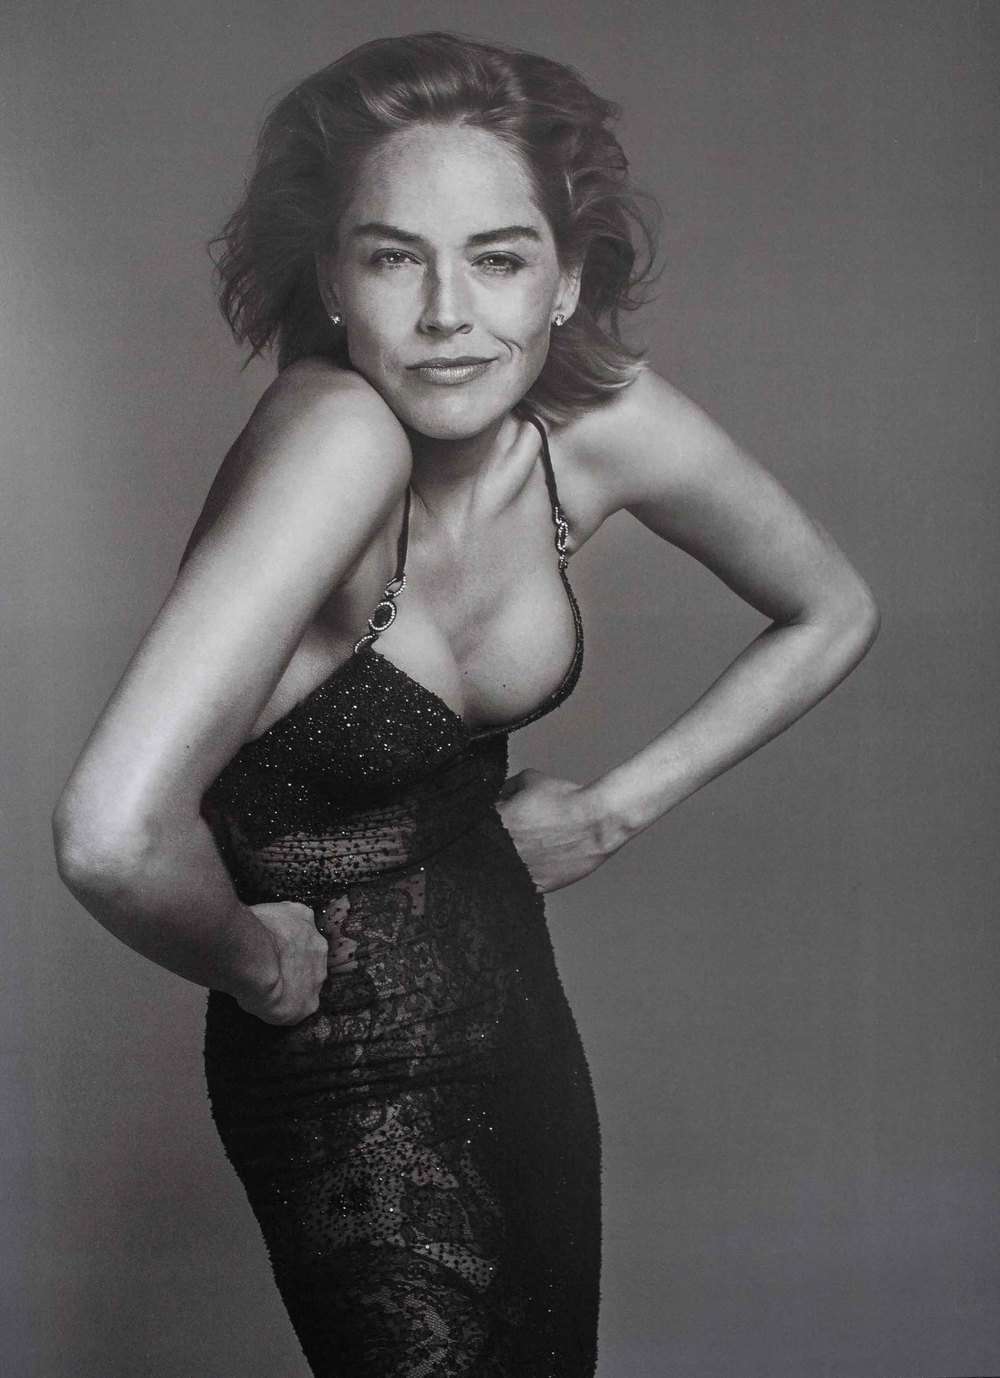 Sharon Stone by Richard Avedon